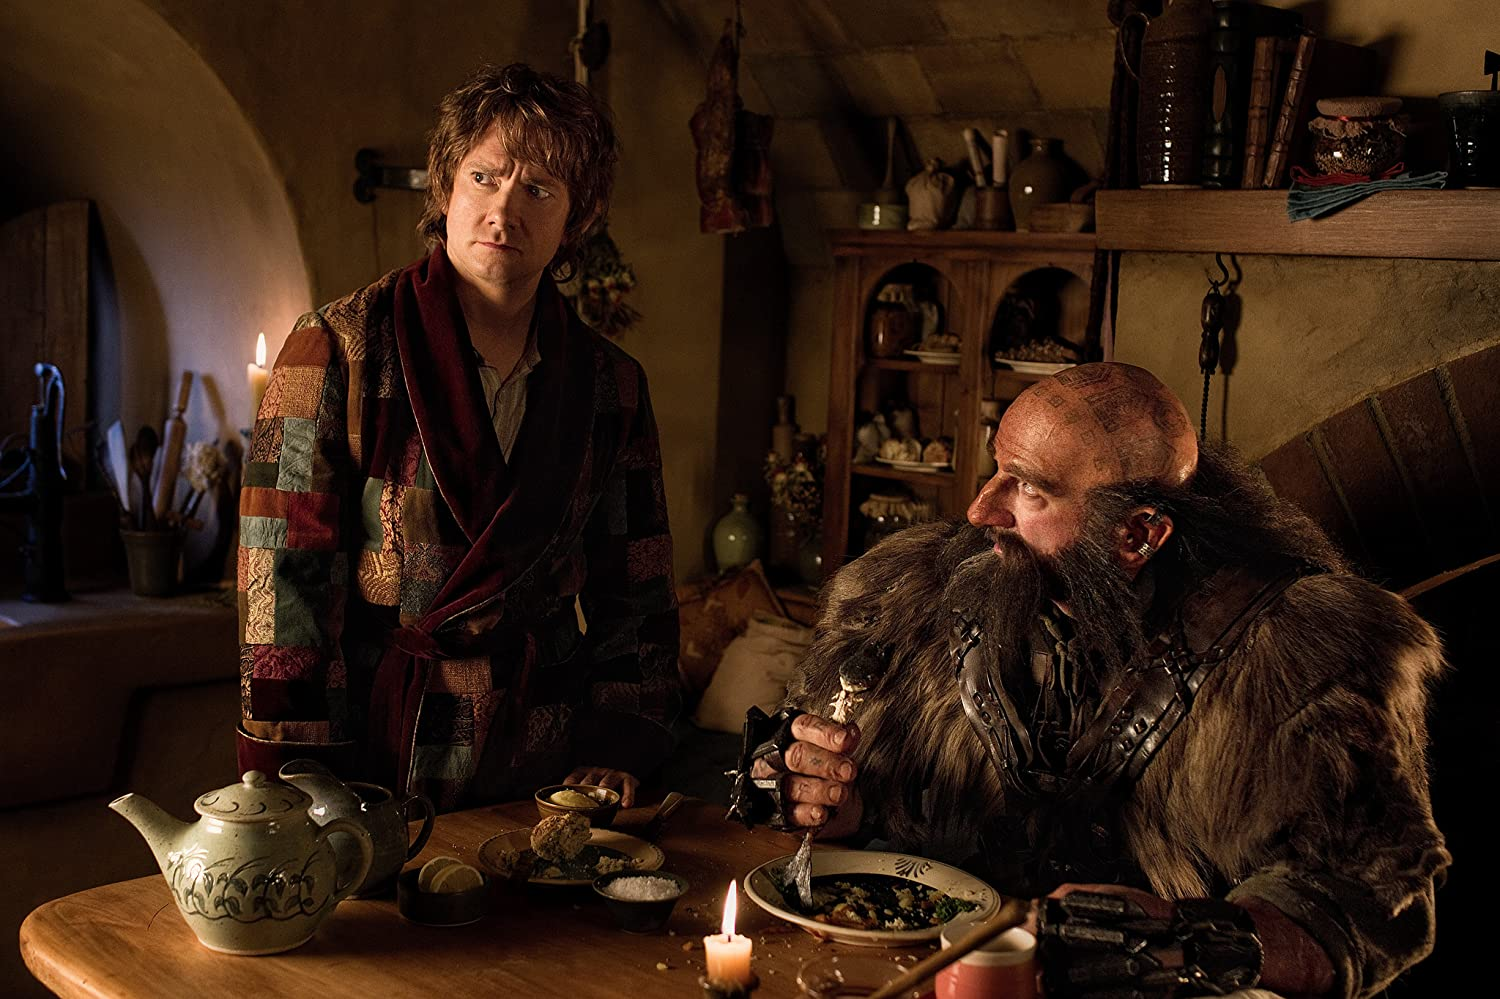 Martin Freeman and Graham McTavish in The Hobbit: An Unexpected Journey (2012)